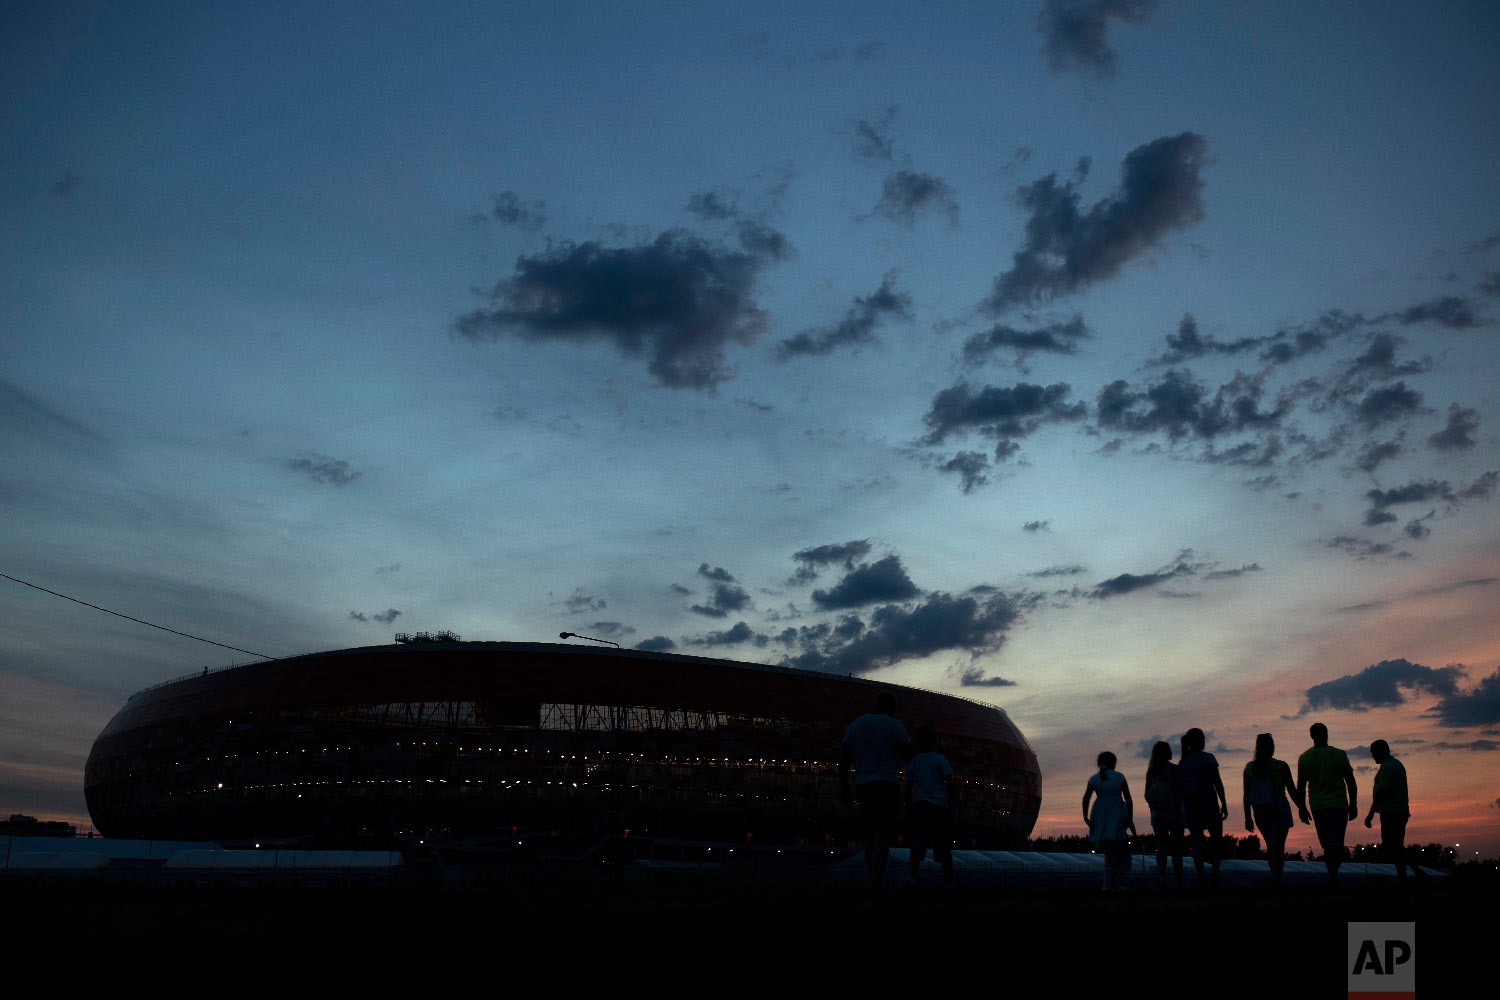 People walk next to the Mordovia Arena stadium as the sun sets at the 2018 soccer World Cup in Saransk, Russia on June 24, 2018. (AP Photo/Francisco Seco)